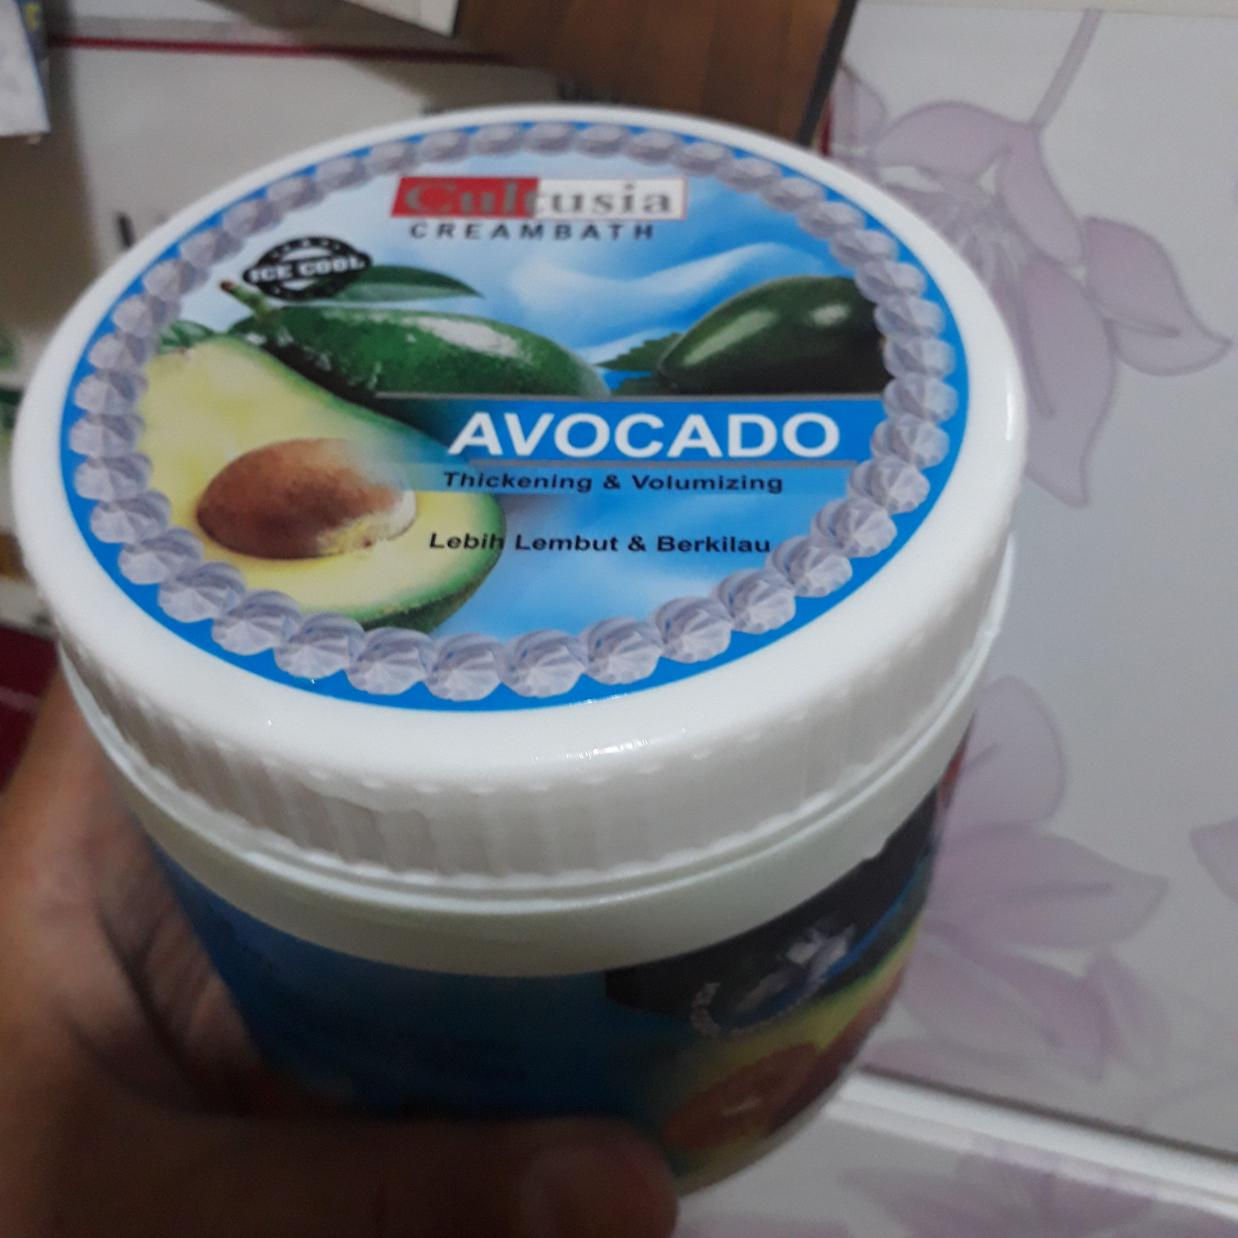 Cultusia Creambath Avocado Review Female Daily